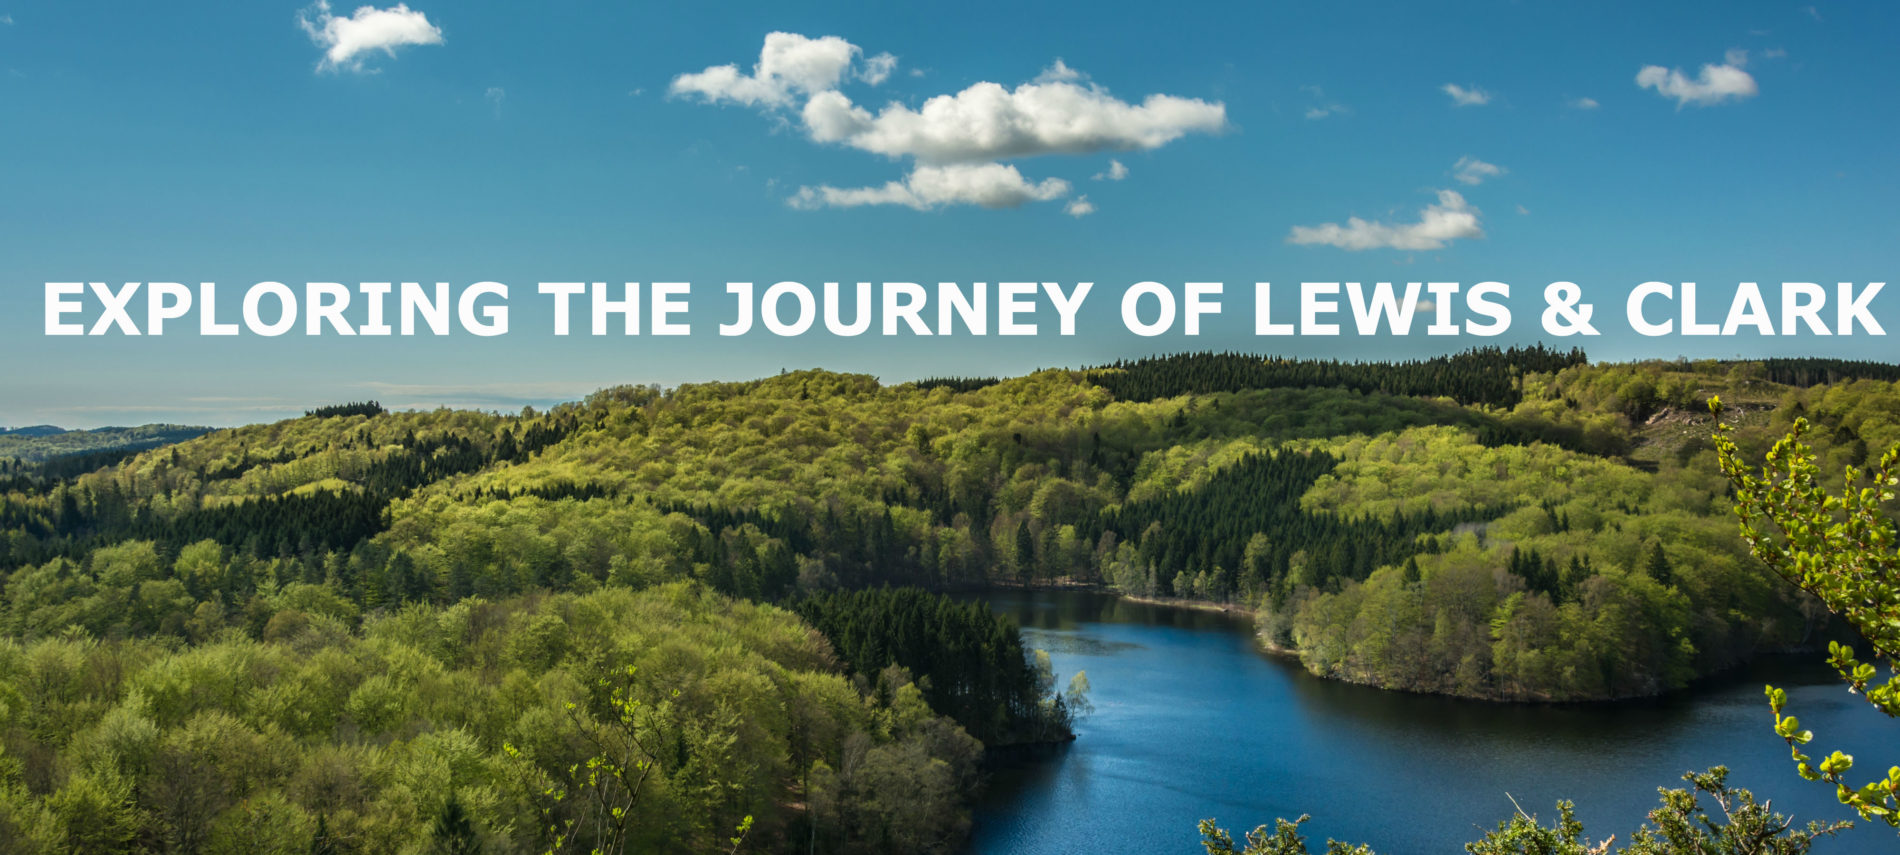 River curving through tree-lined area with text Exploring the Journey of Lewis & Clark.